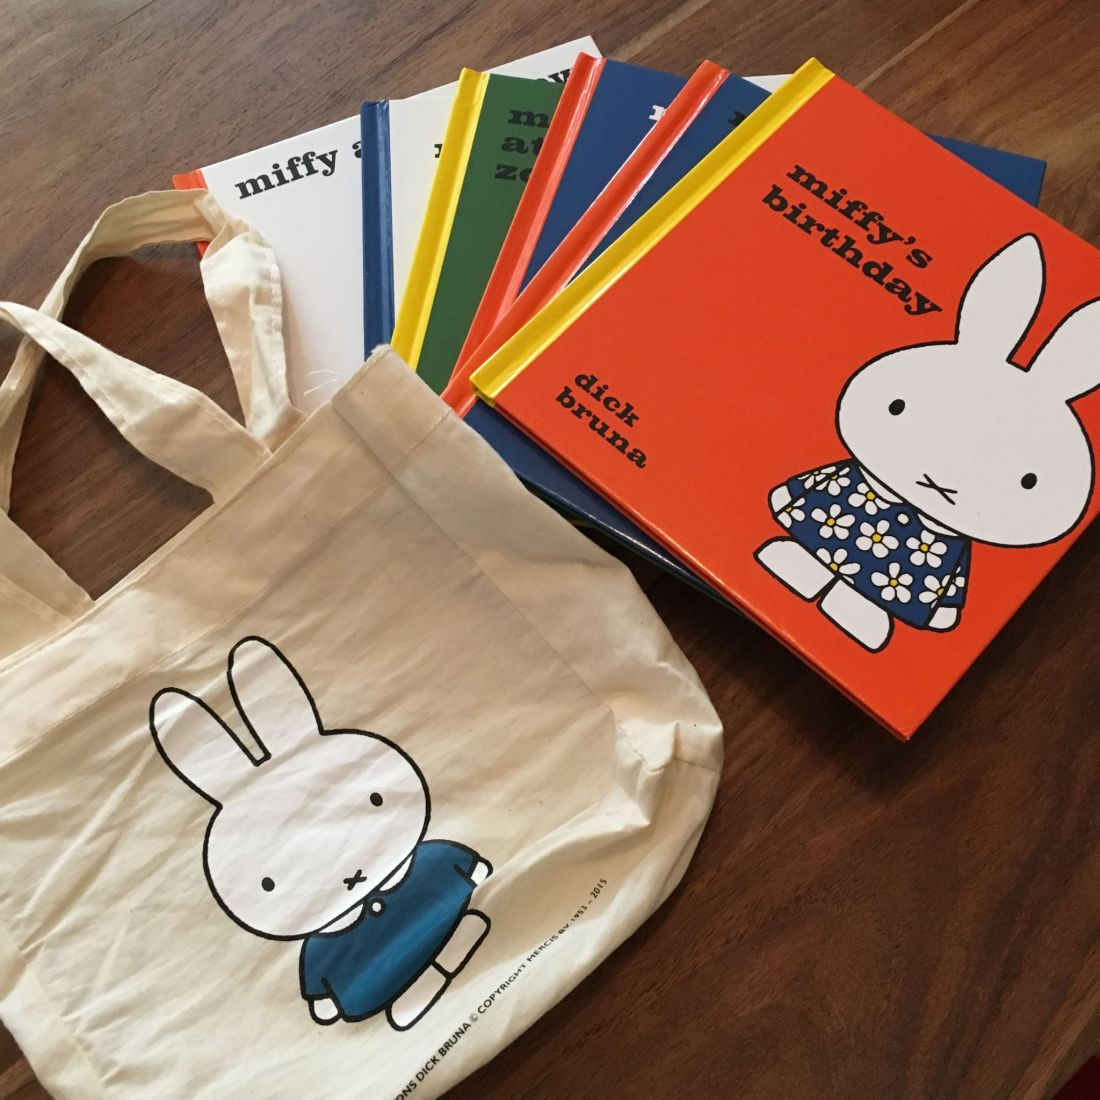 Miffy books and book bag